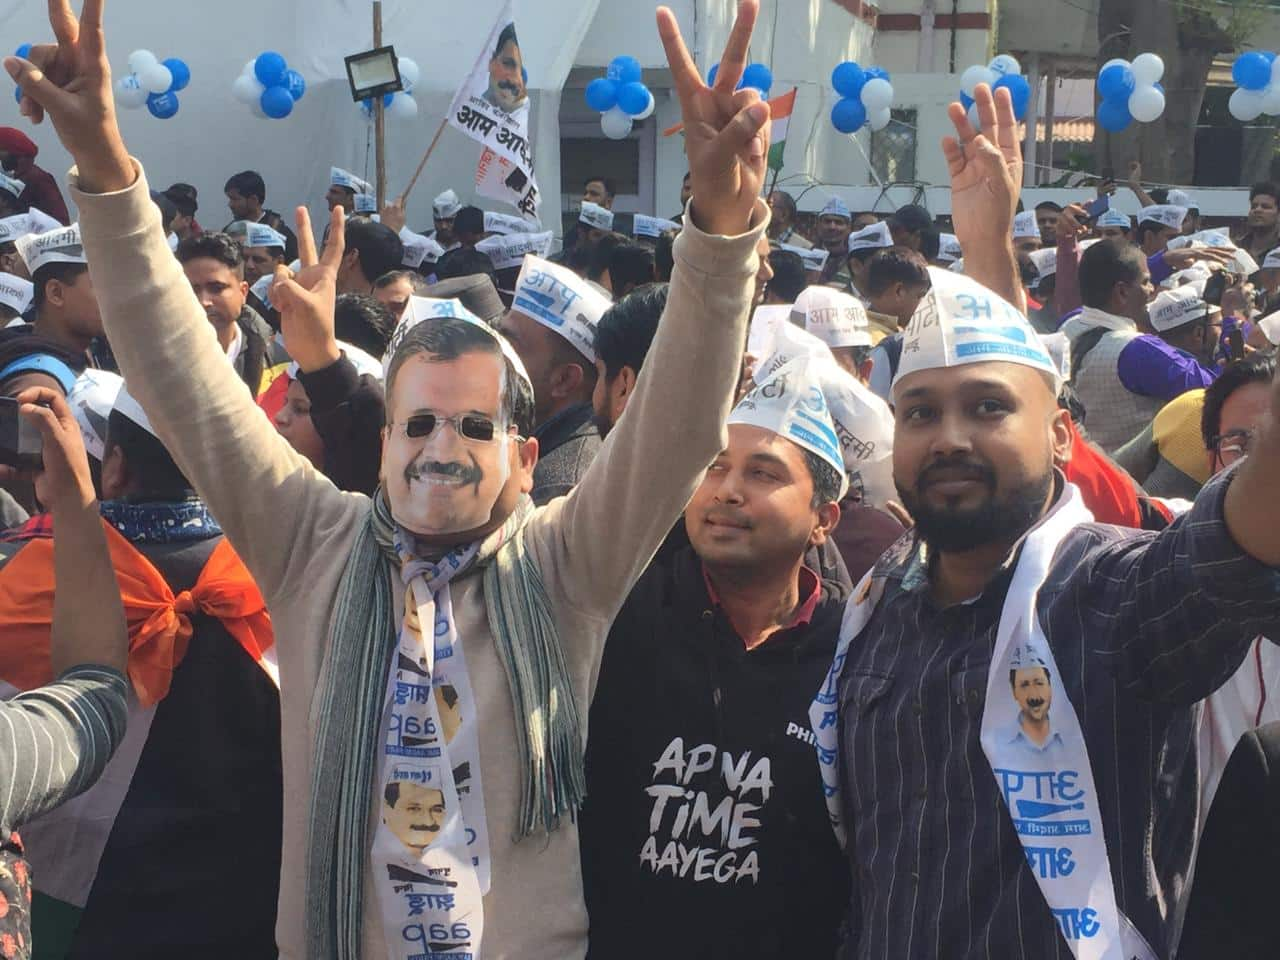 Supporters celebrating with Kejriwal's mask on